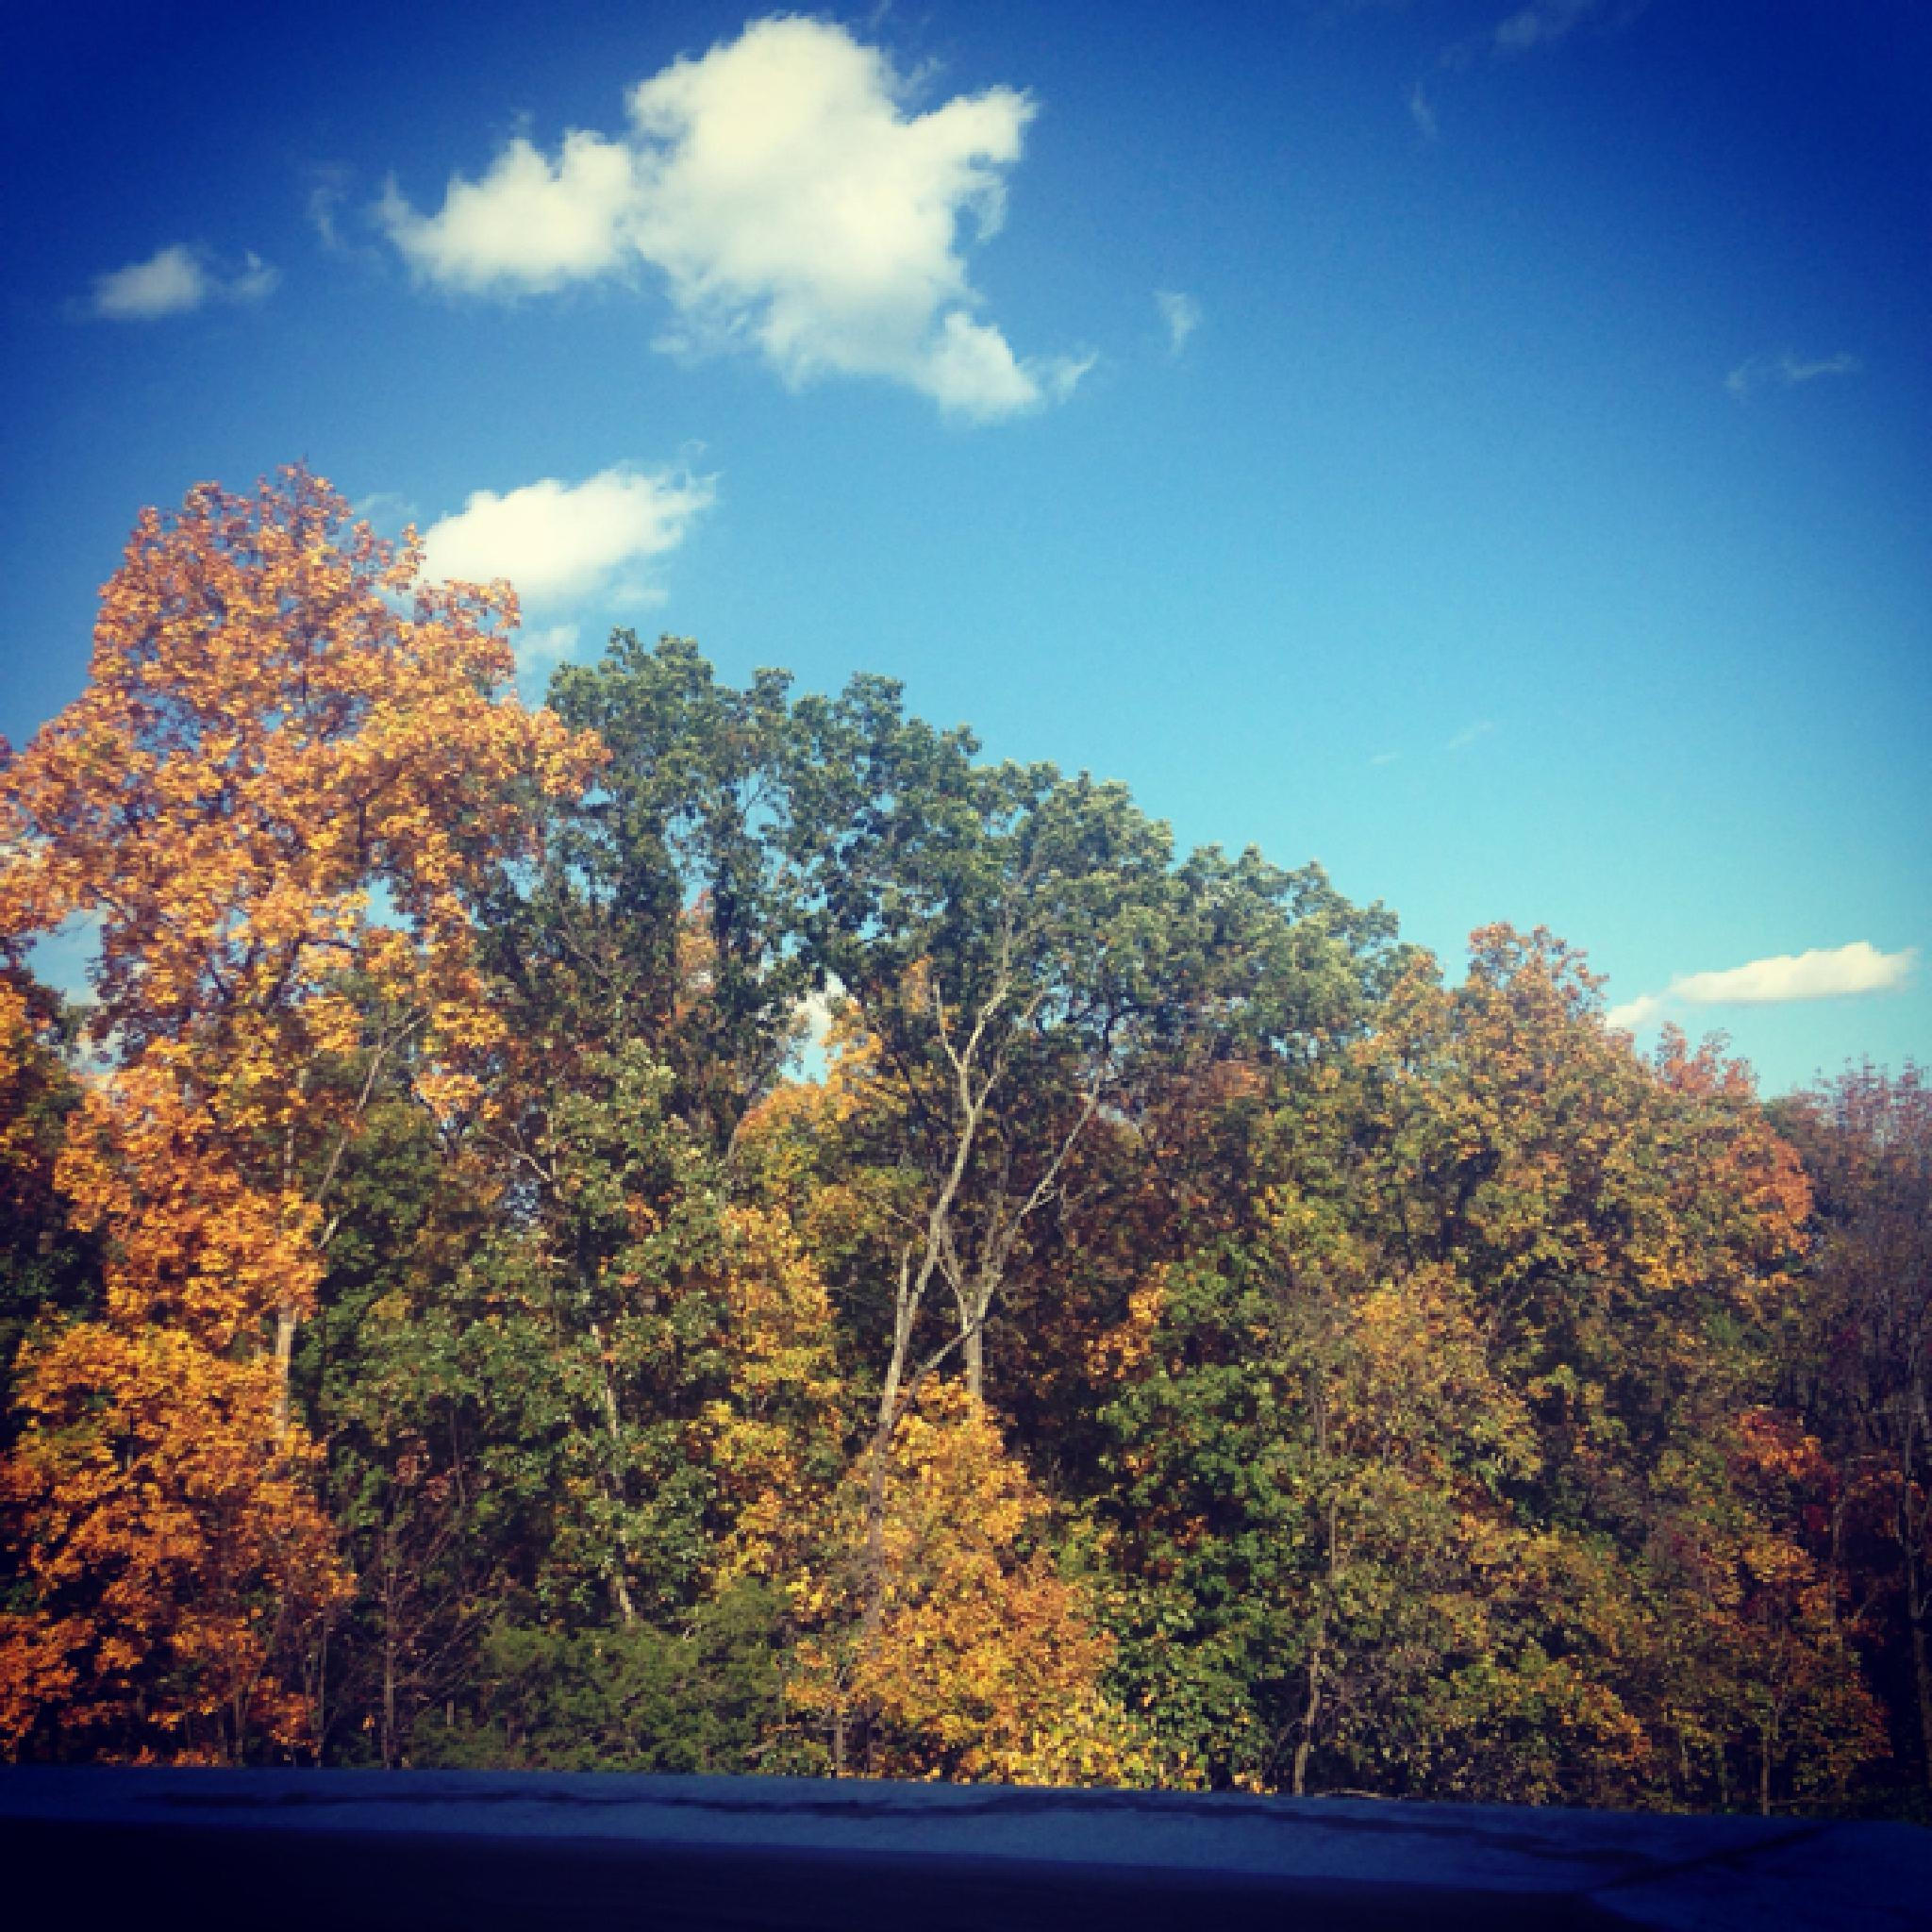 autumn from my phone by Saif